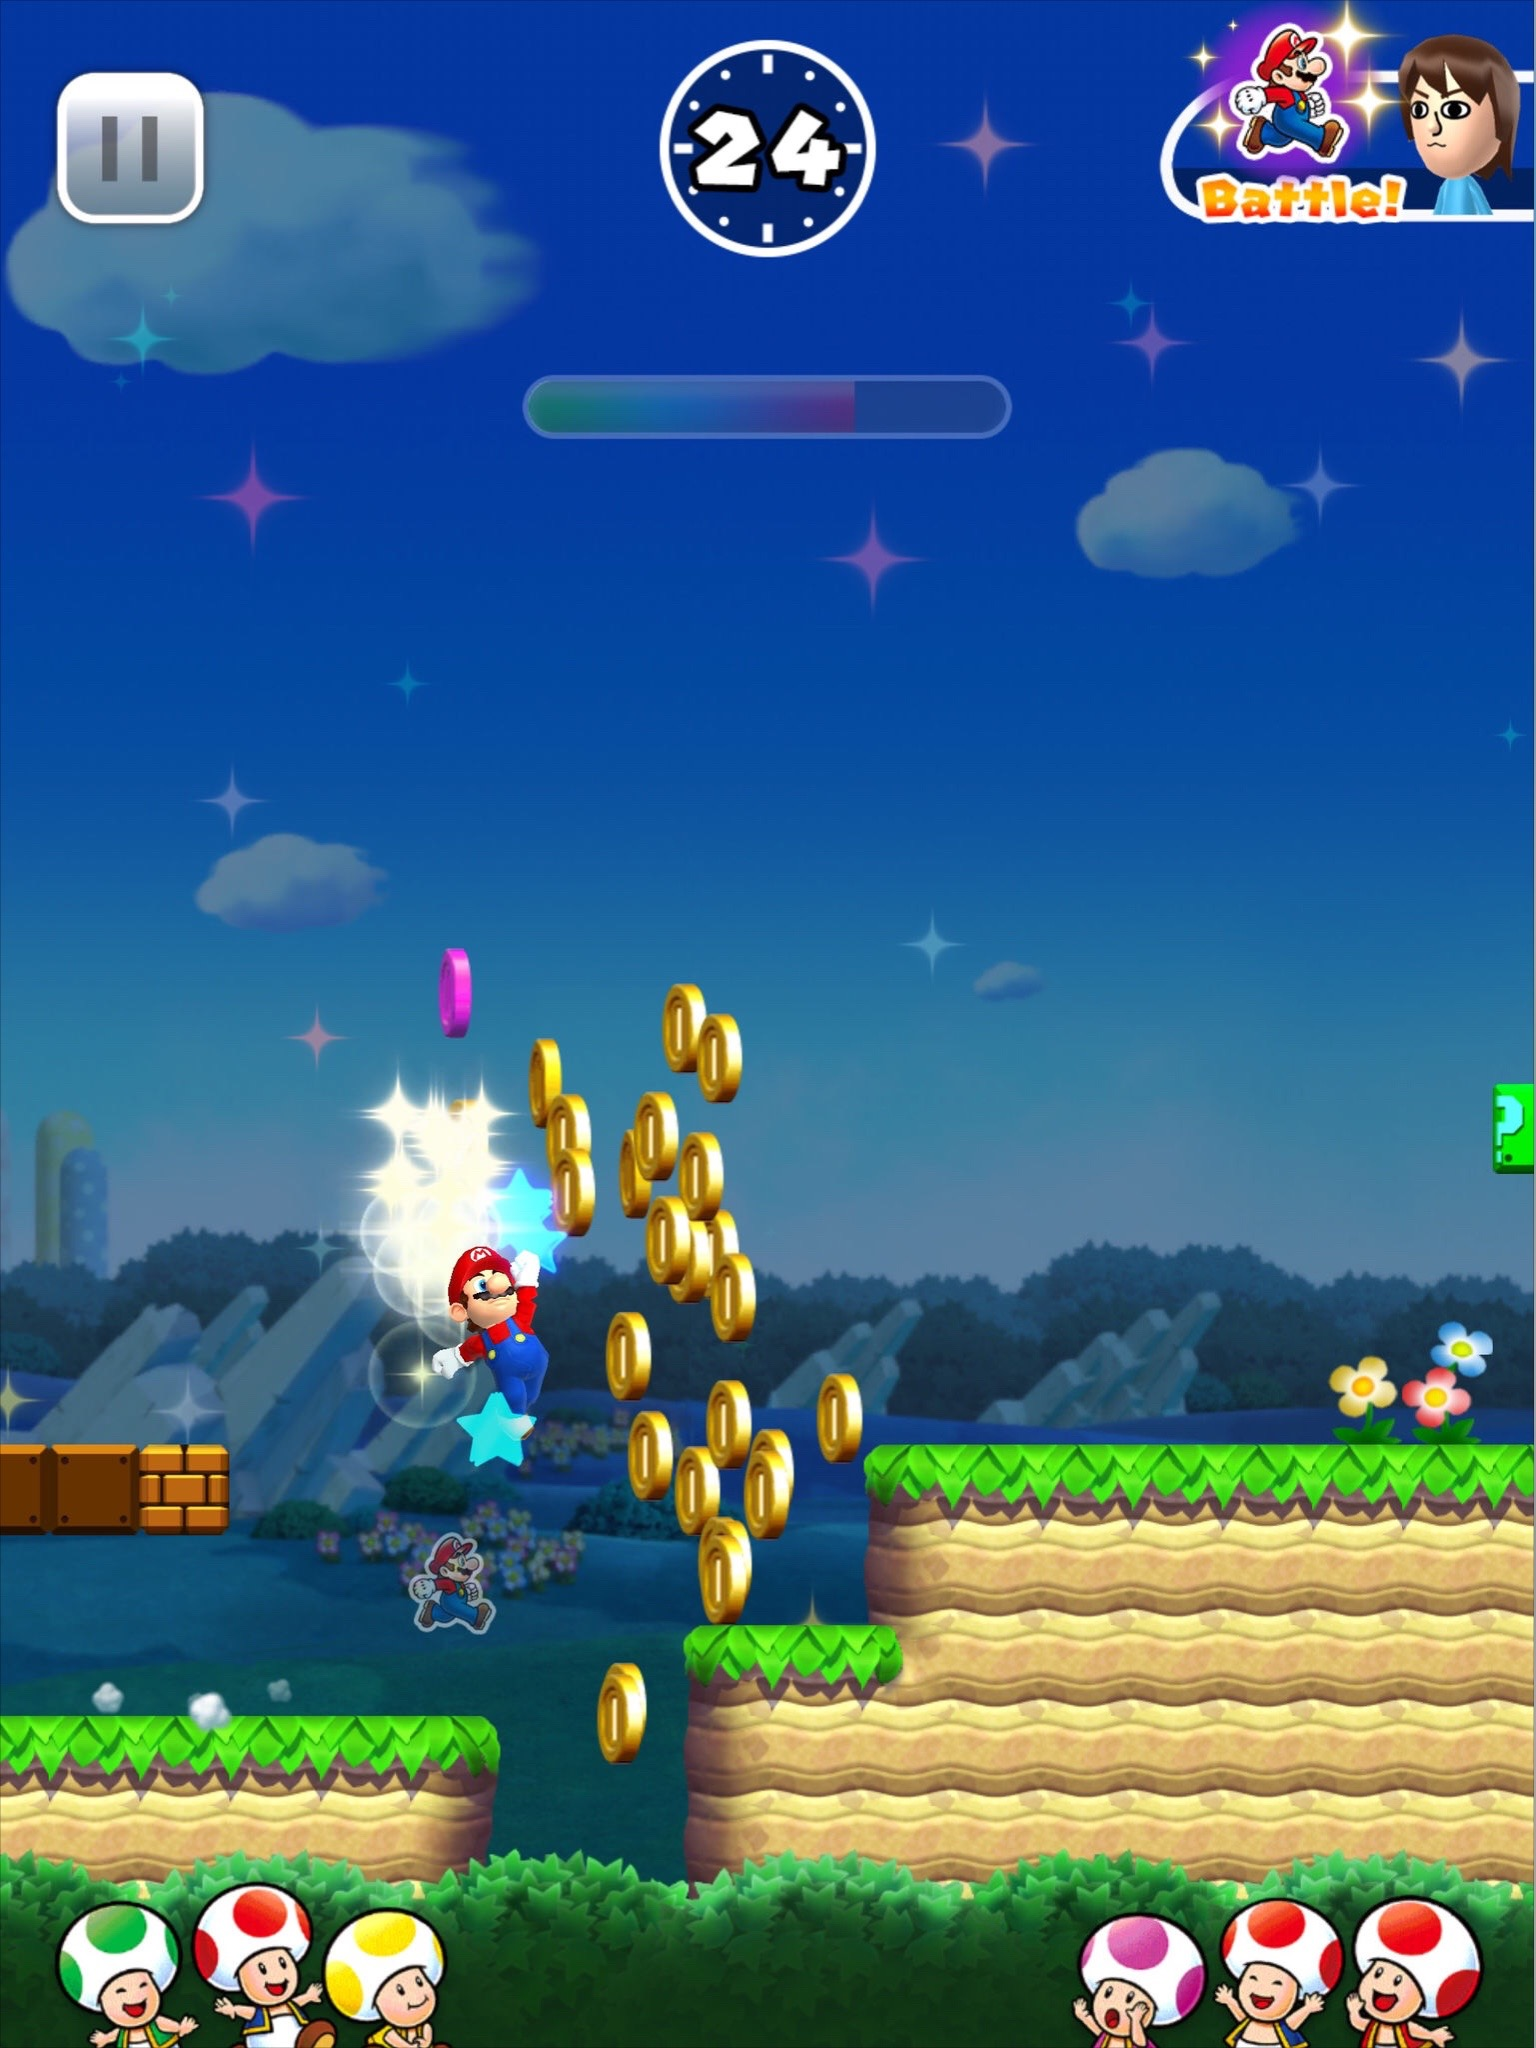 Bypass Jailbreak Detection And Play Super Mario Run On A